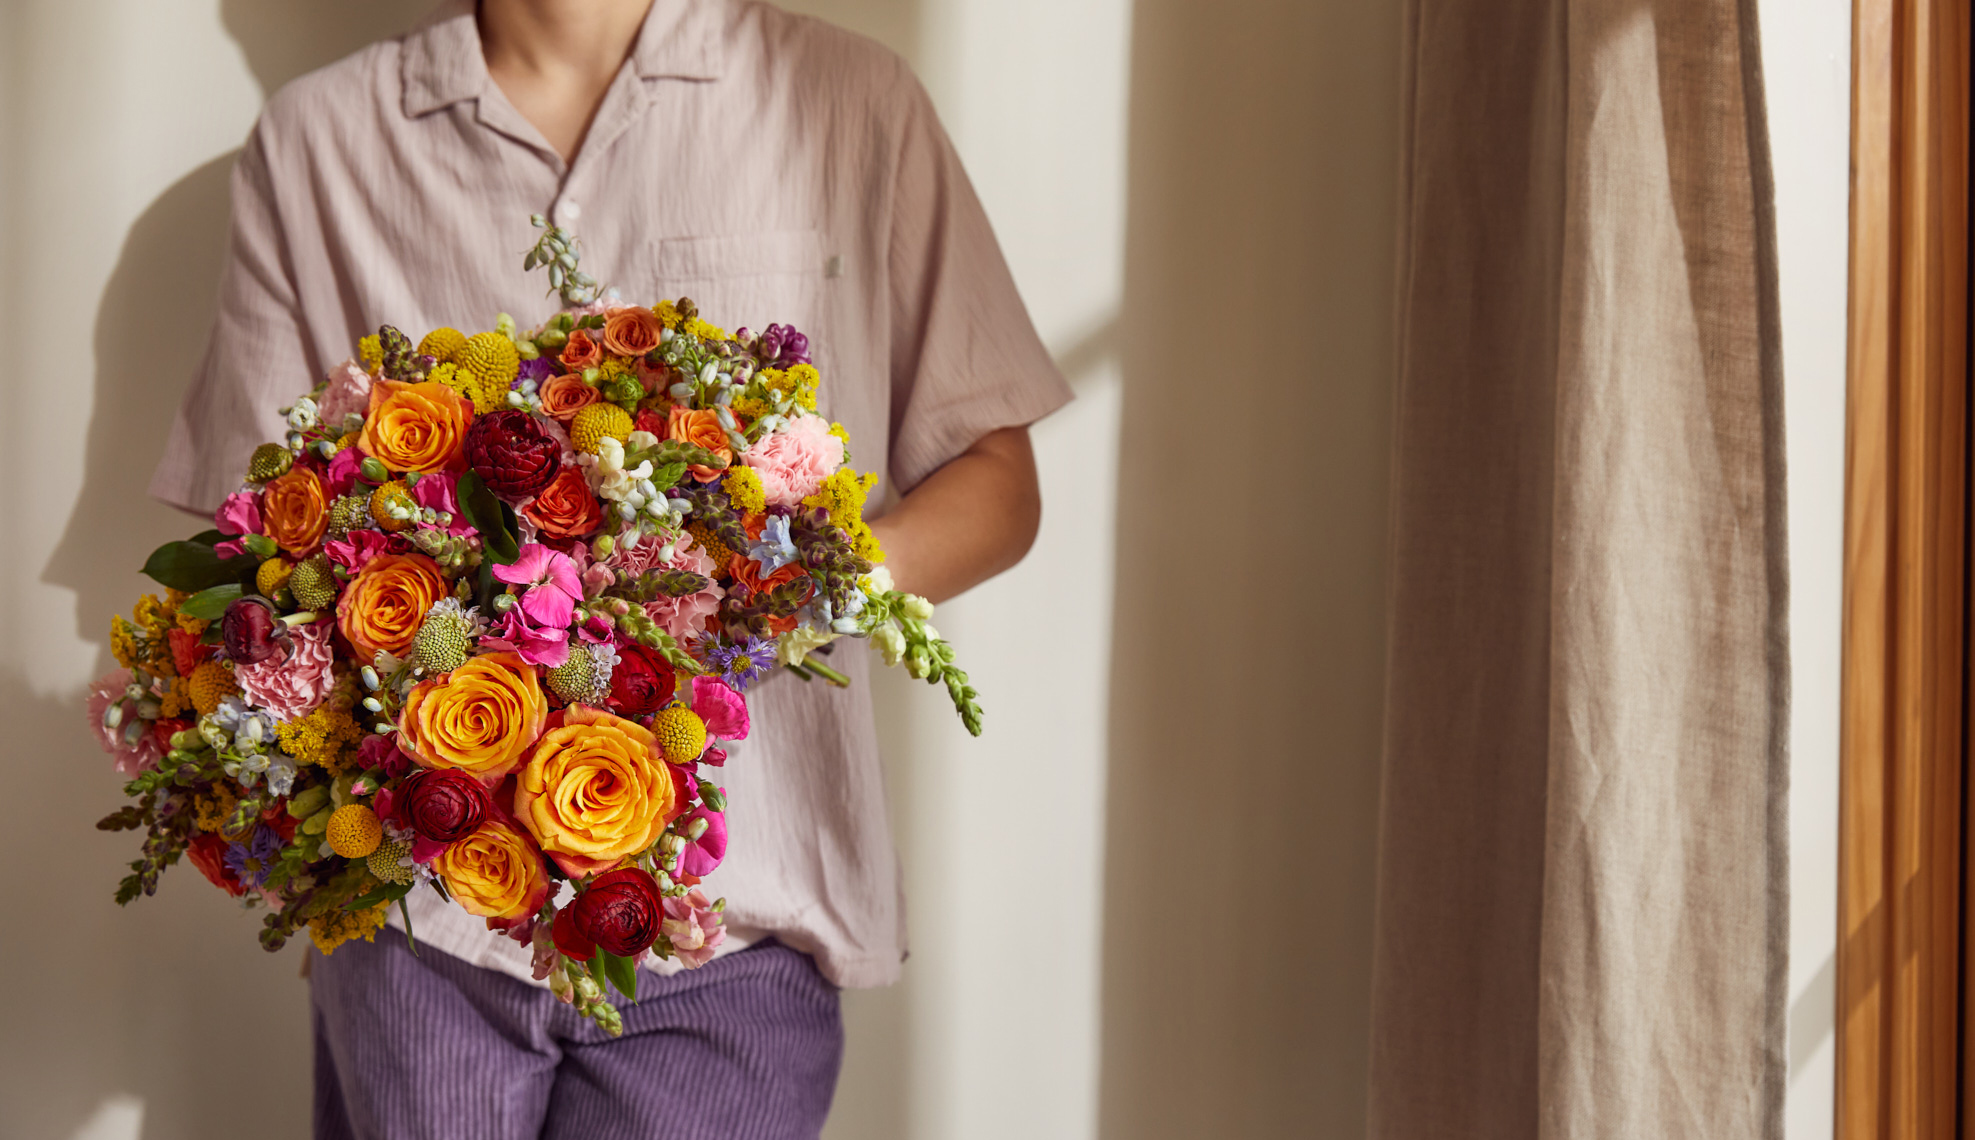 Person in collared light pink shirt with a rainbow flower arrangement.